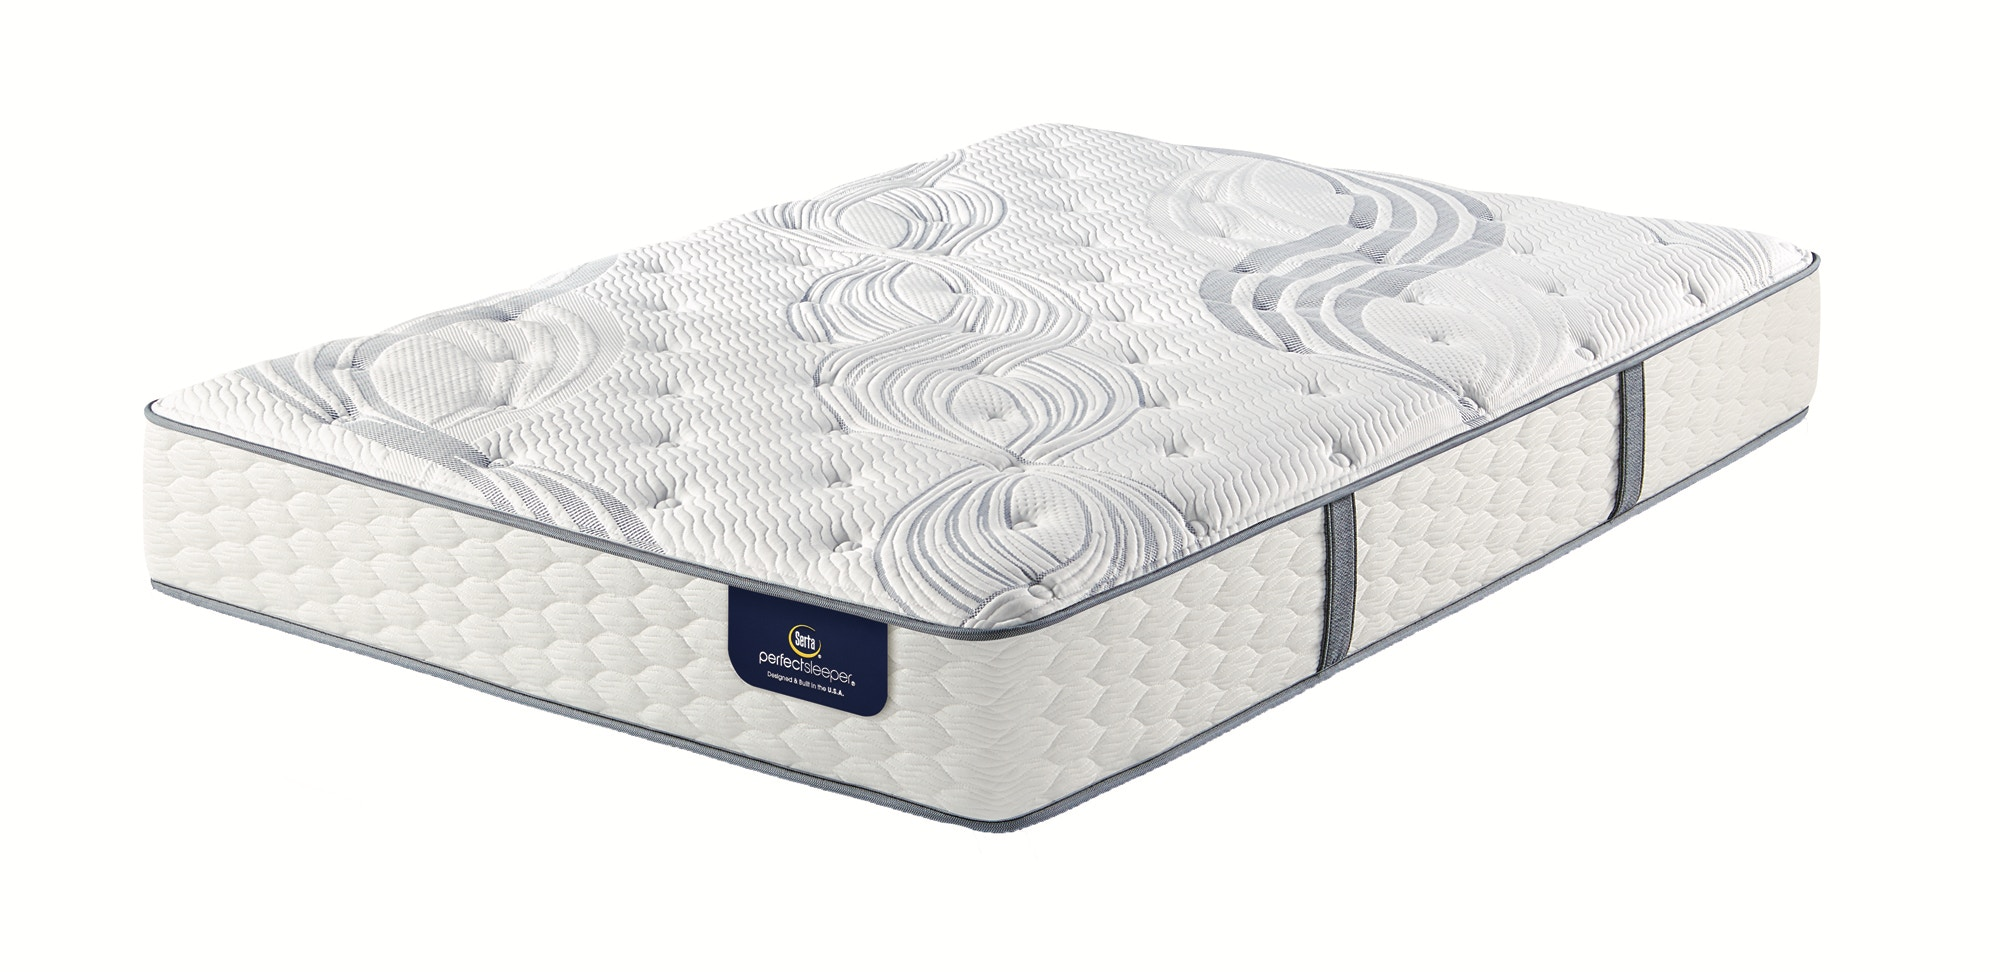 Serta Sweet Dreams Mattress Mattress U0026 Box Spring Serta Perfect Sleeper Perfect Sleeper